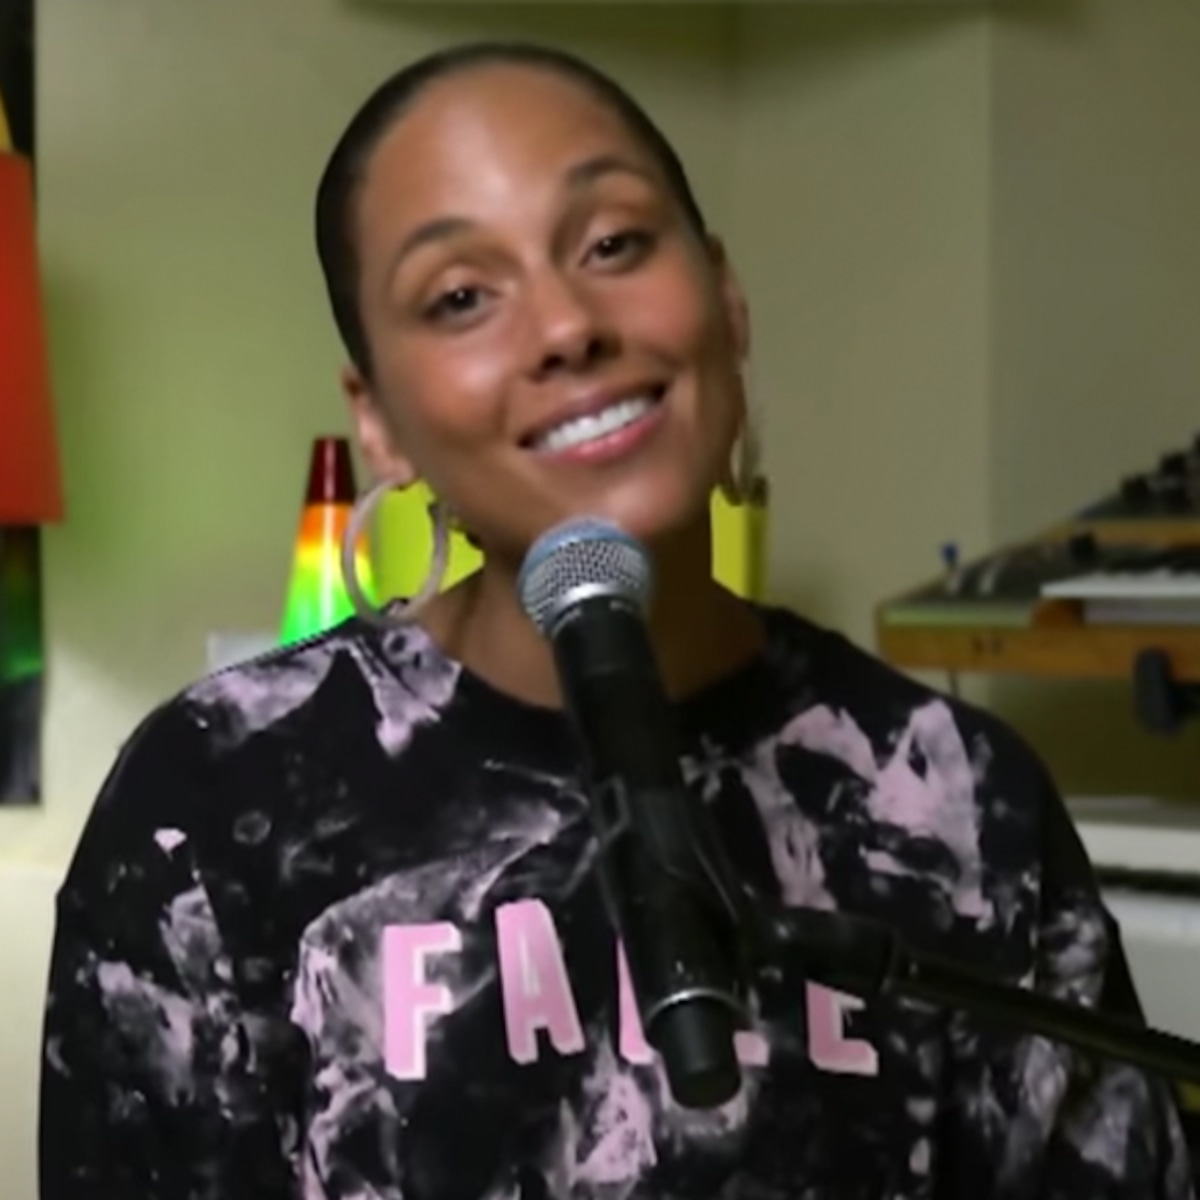 Alicia Keys If I Ain T Got You Audio Download you have to hear alicia keys' social distancing version of